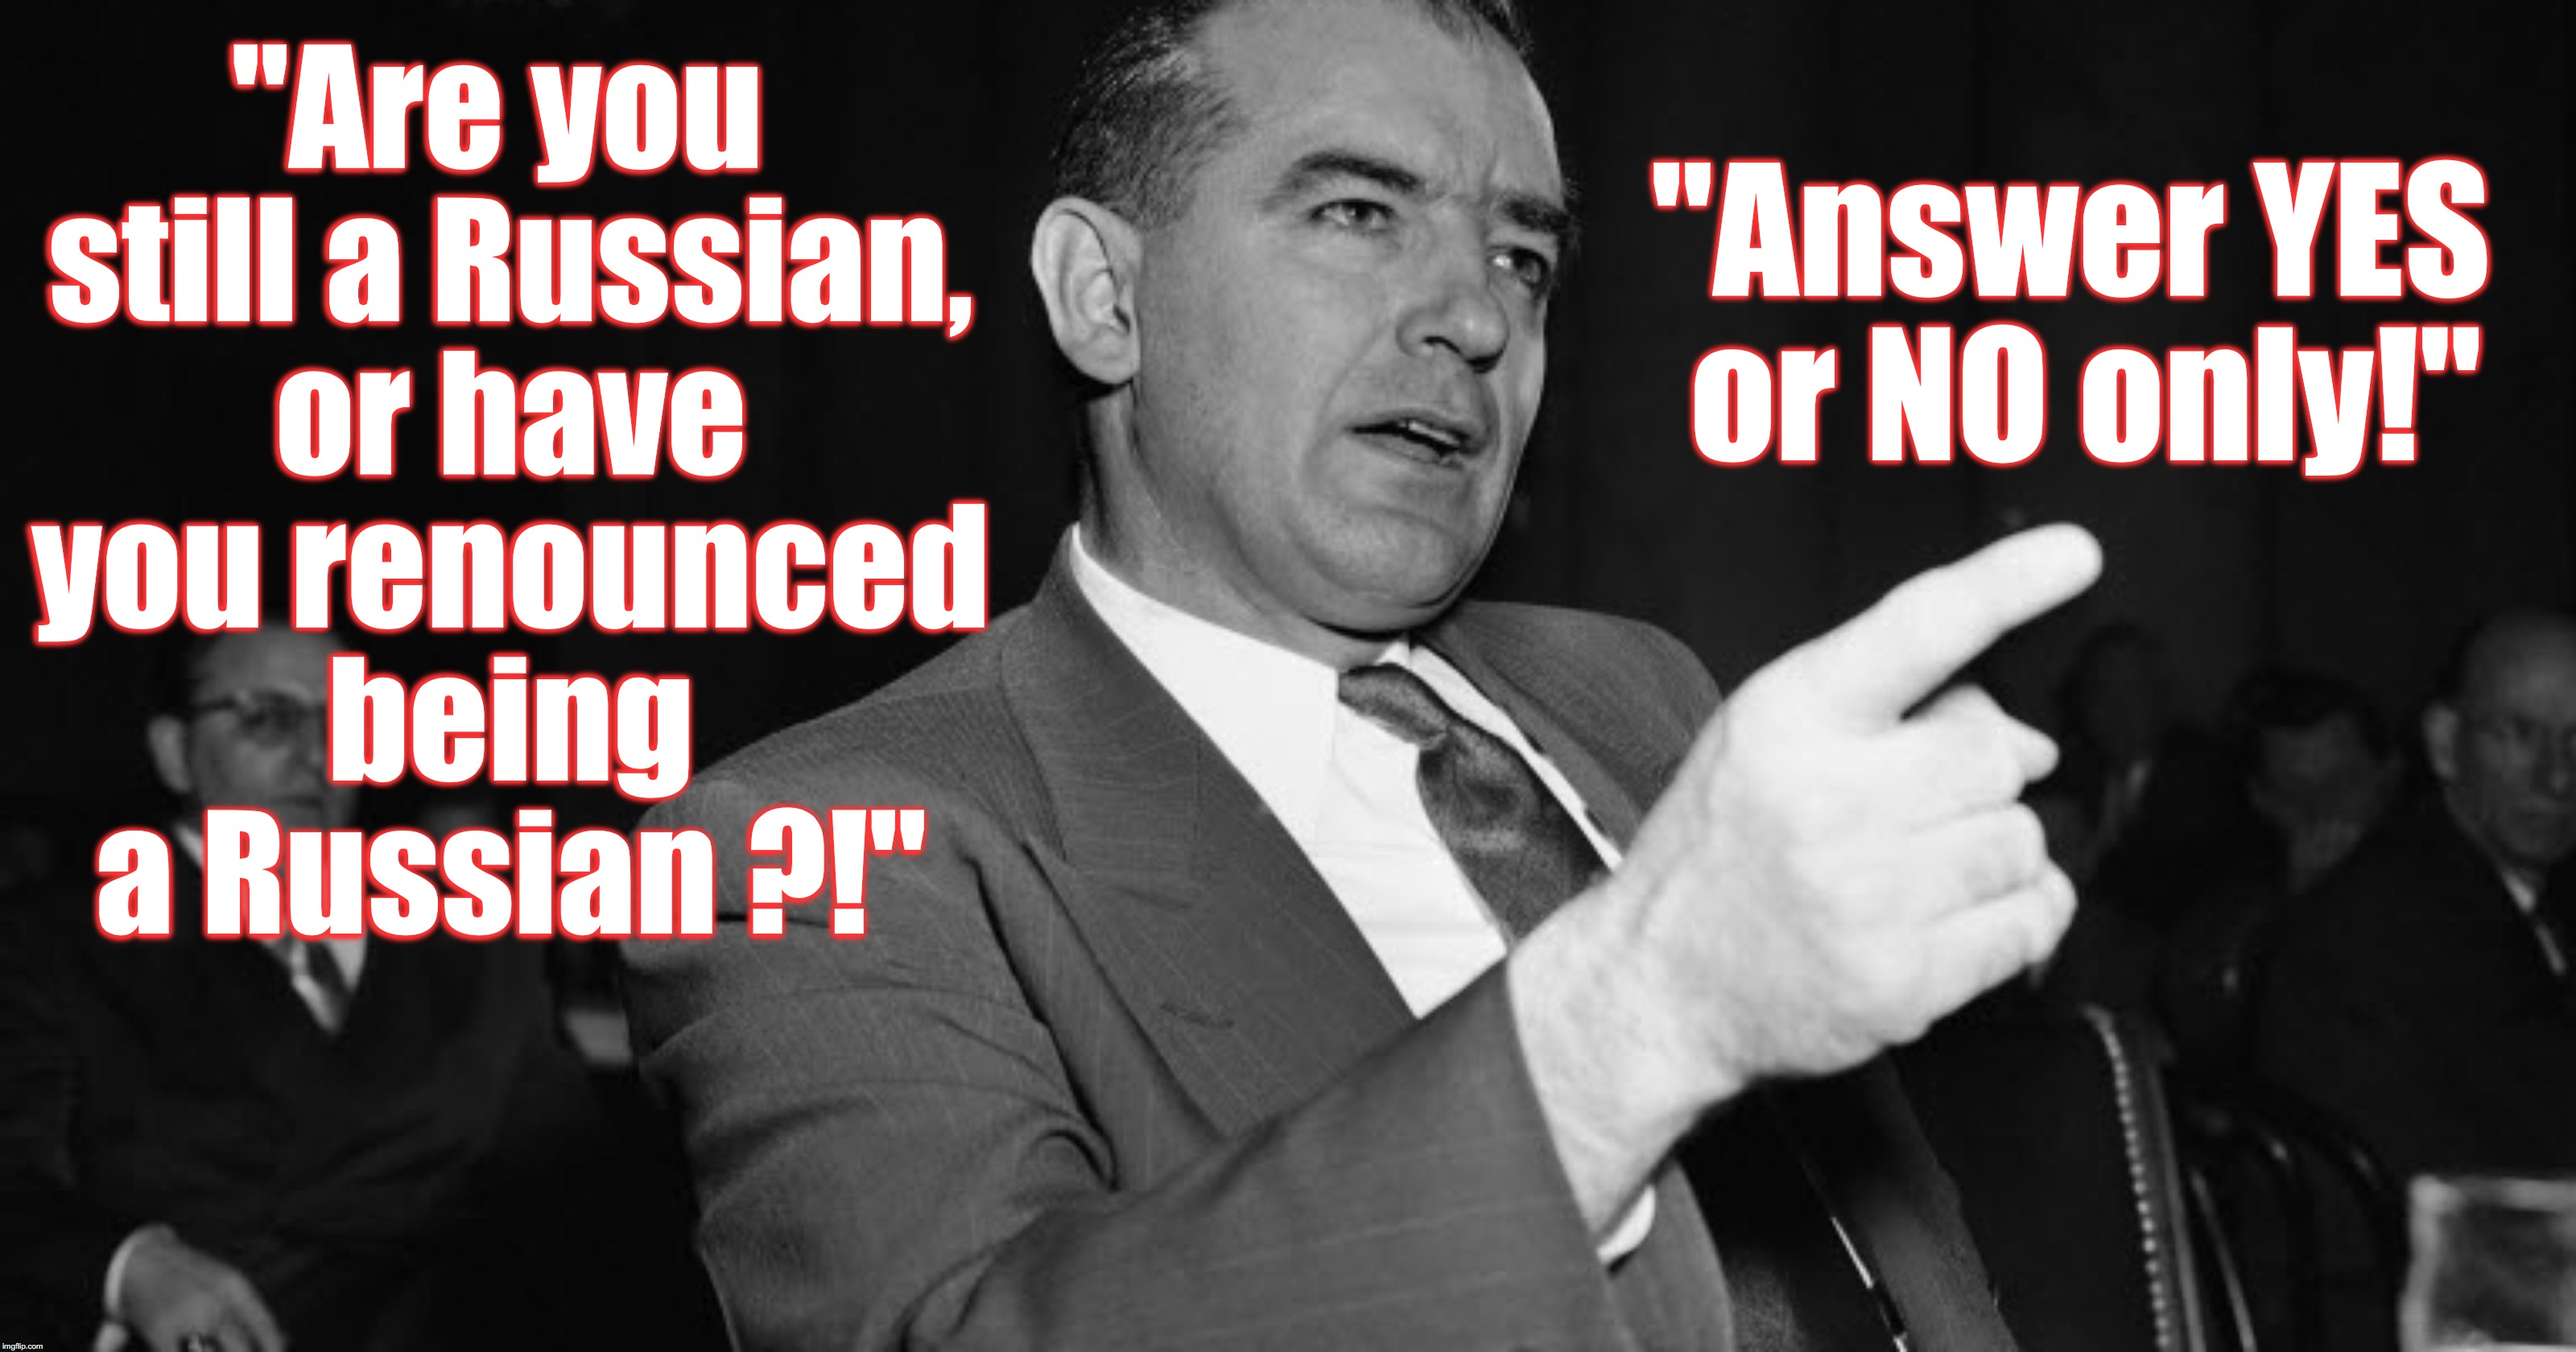 """Are you still a Russian, or have you renounced being a Russian ?!"" ""Answer YES or NO only!"" 